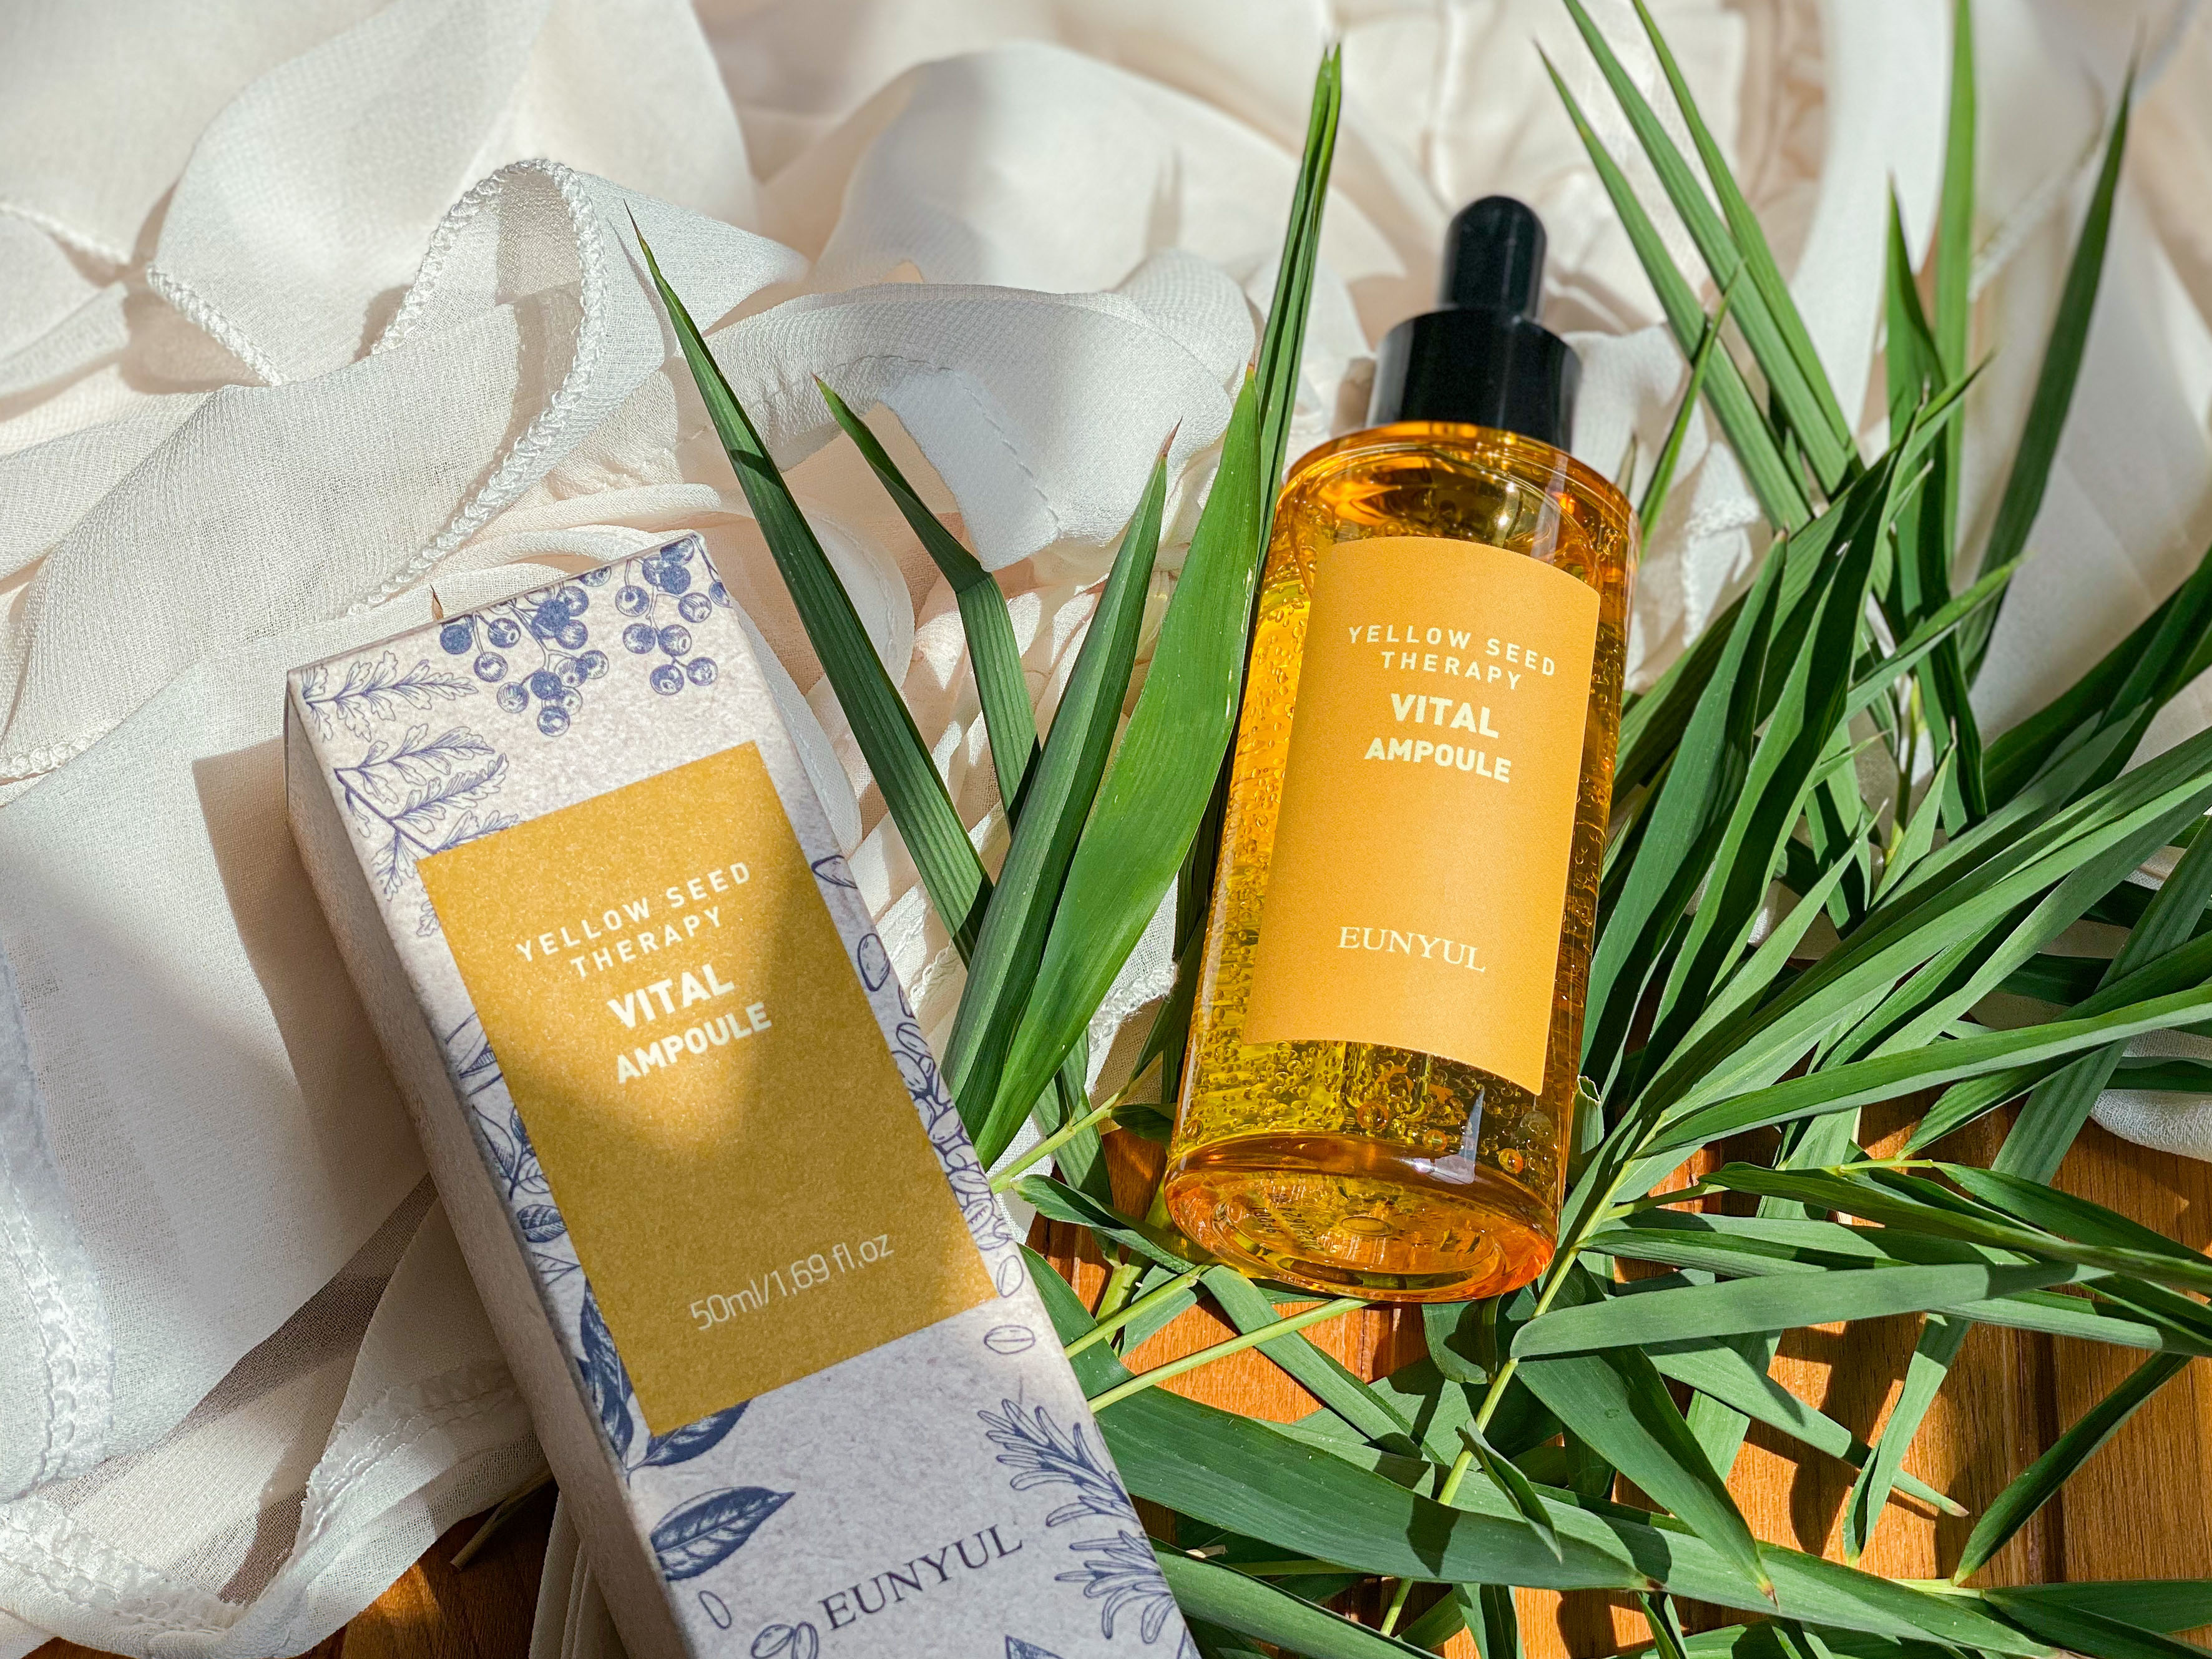 REVIEW | Eunyul Yellow Seed Therapy Vital Ampoule